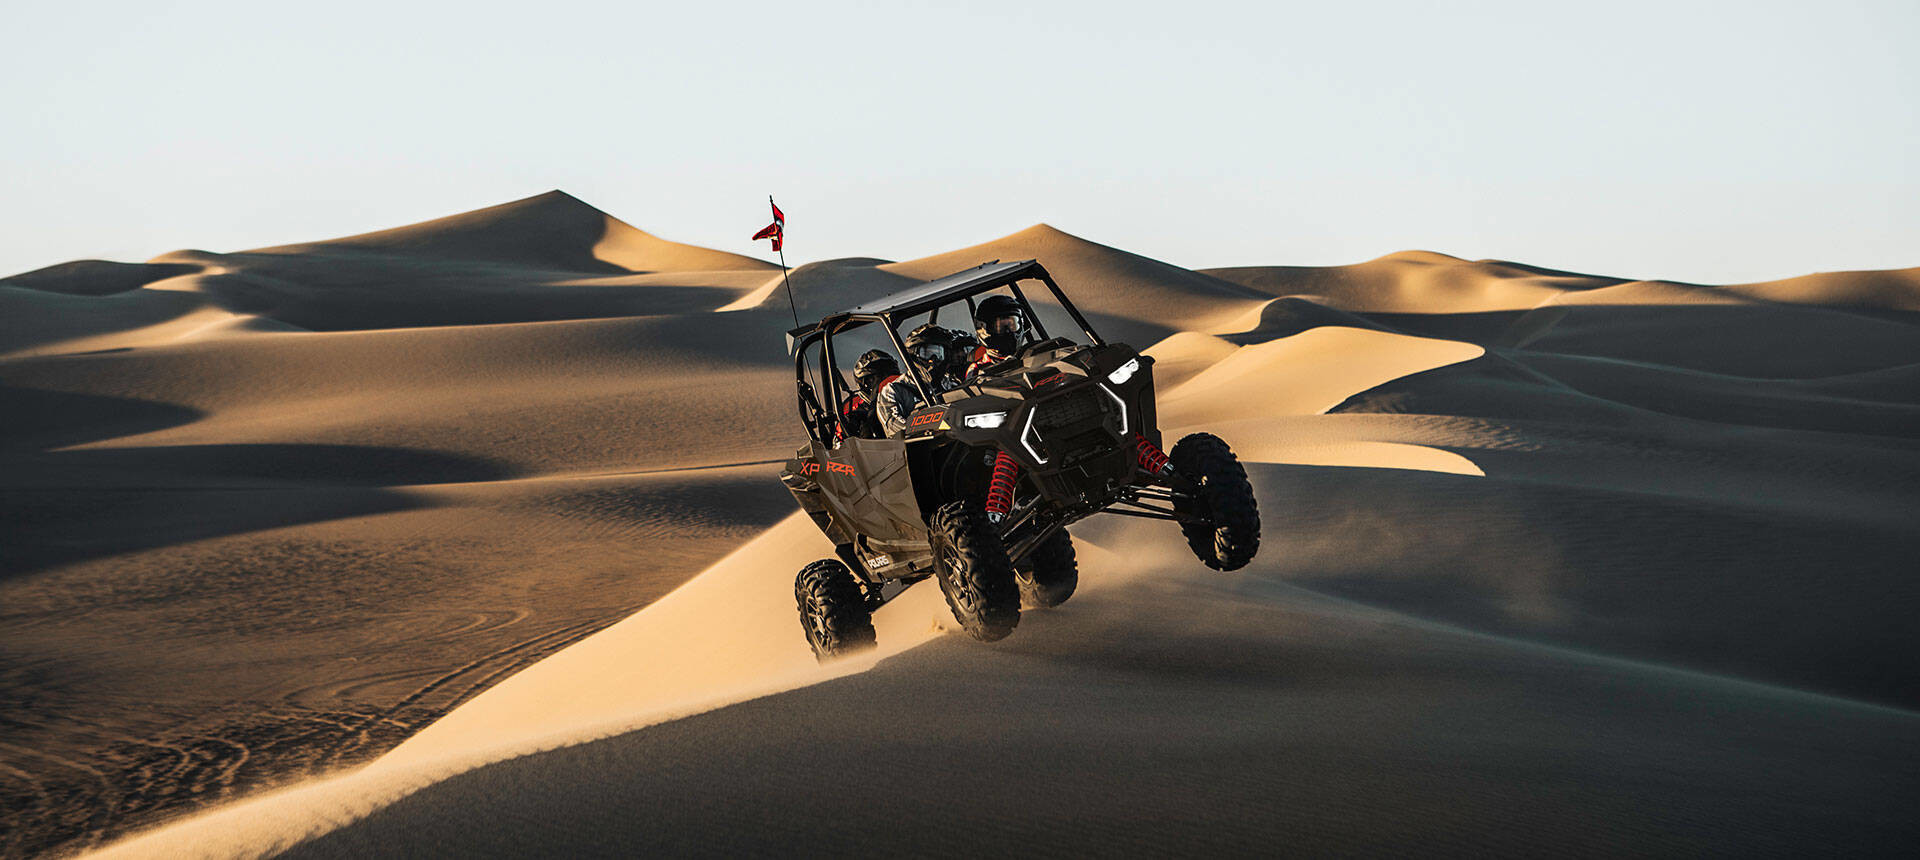 2020 RZR® XP 4 1000 Limited Edition Instagram image 8